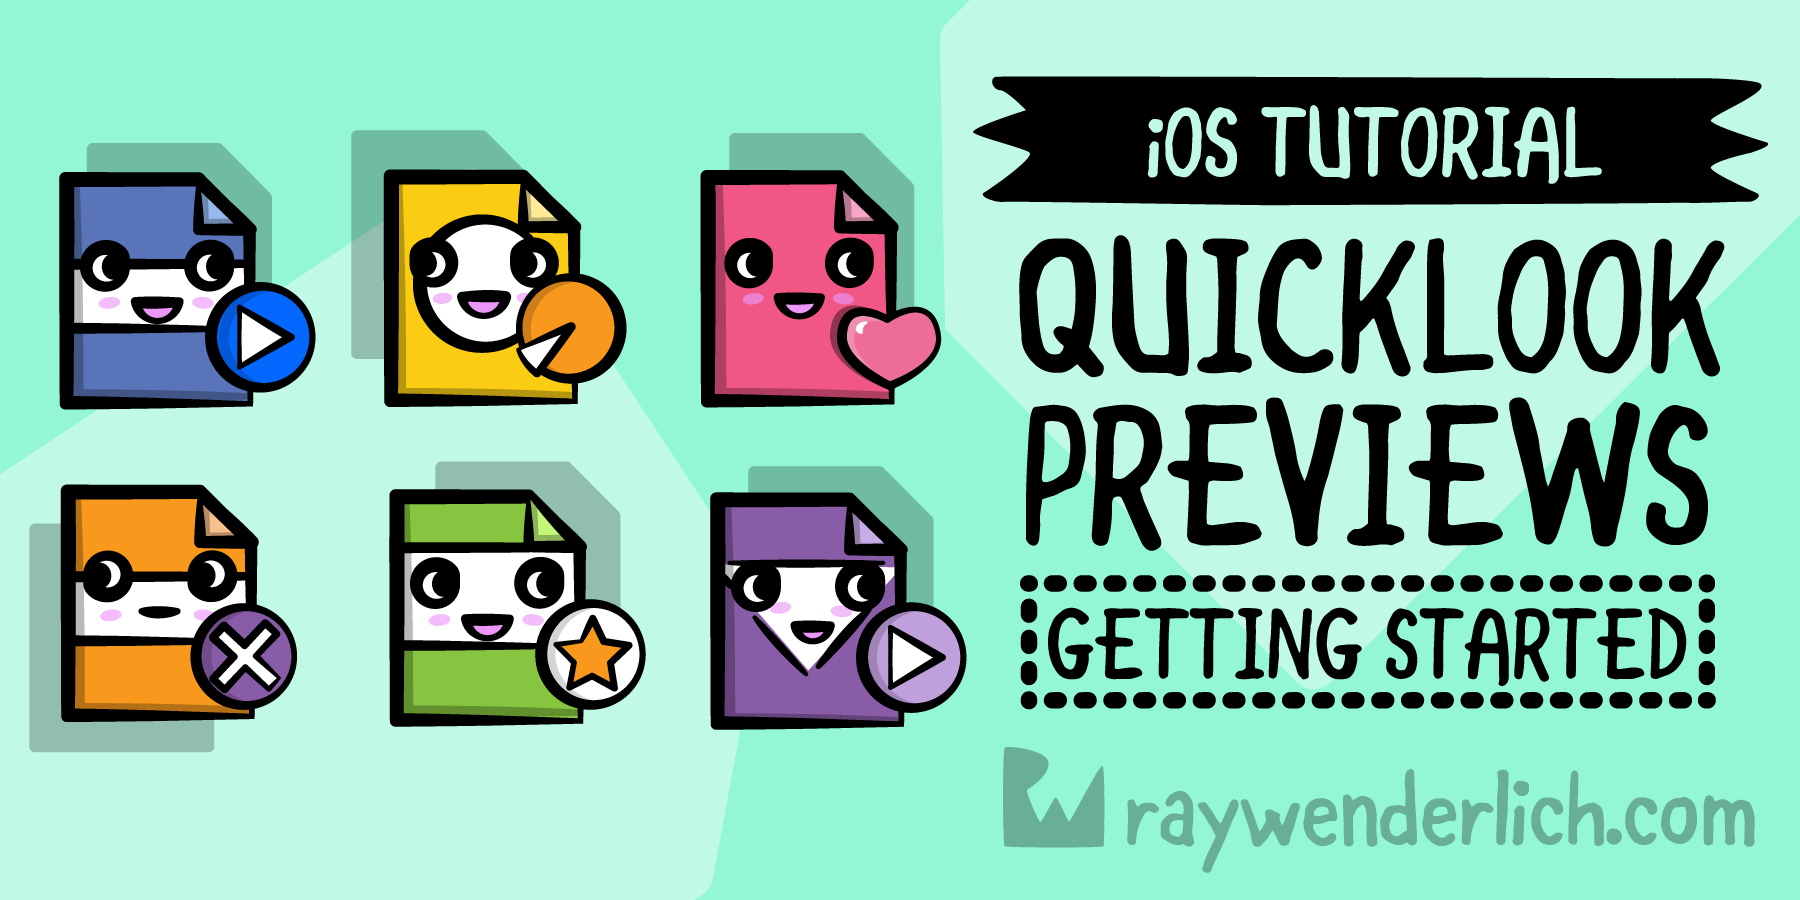 QuickLook Previews for iOS: Getting Started [FREE]